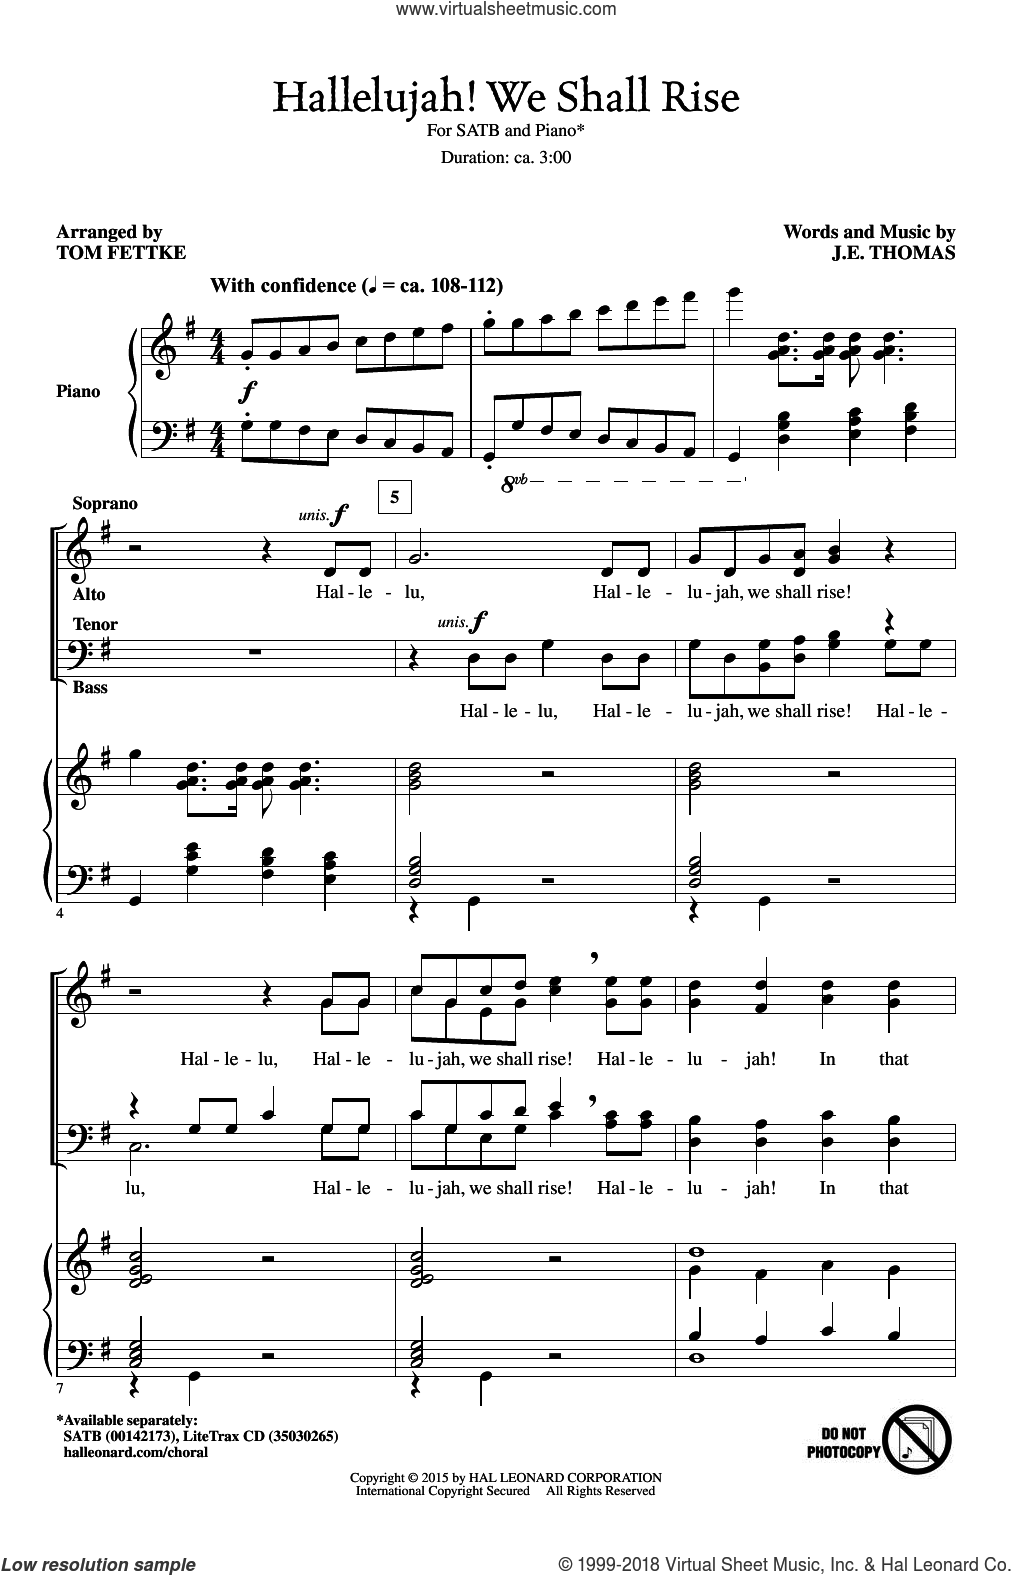 Hallelujah! We Shall Rise sheet music for choir and piano (SATB) by J.E. Thomas and Tom Fettke. Score Image Preview.